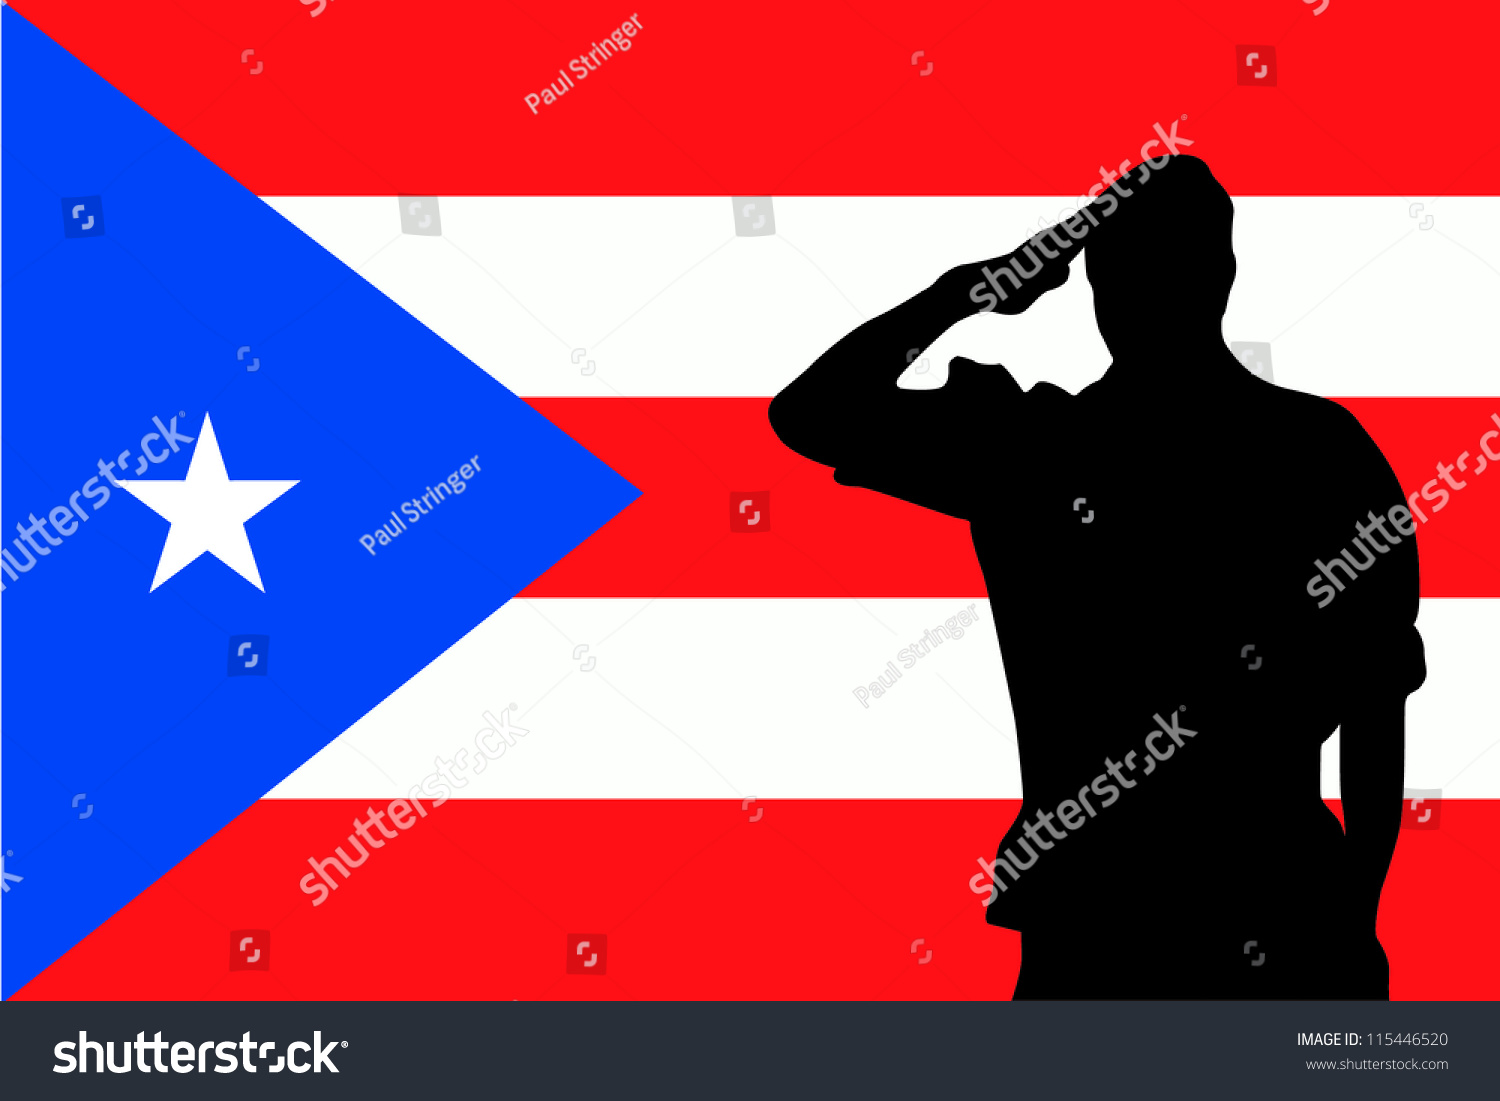 the flag of puerto rico and the silhouette of a soldier saluting